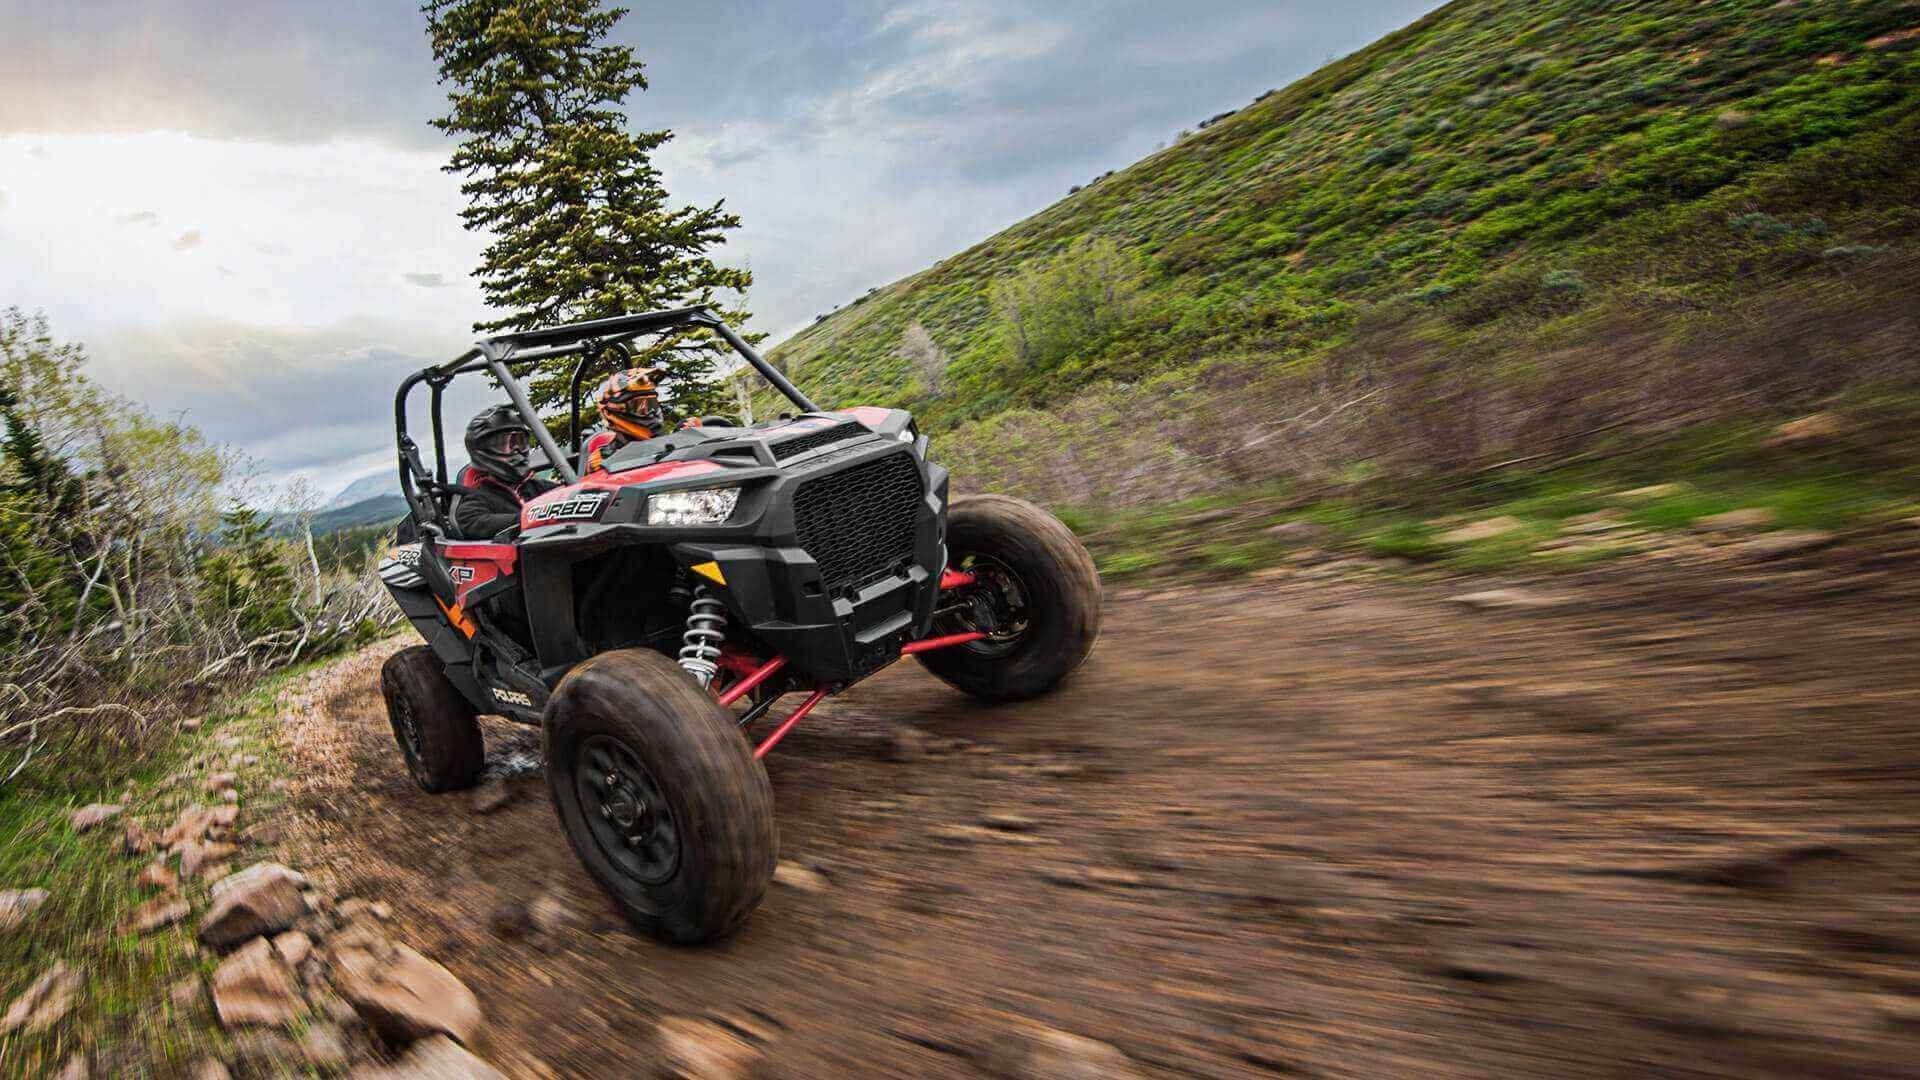 2017-rzr-xp-turbo-eps-cruiser-black_SIX6163_06027